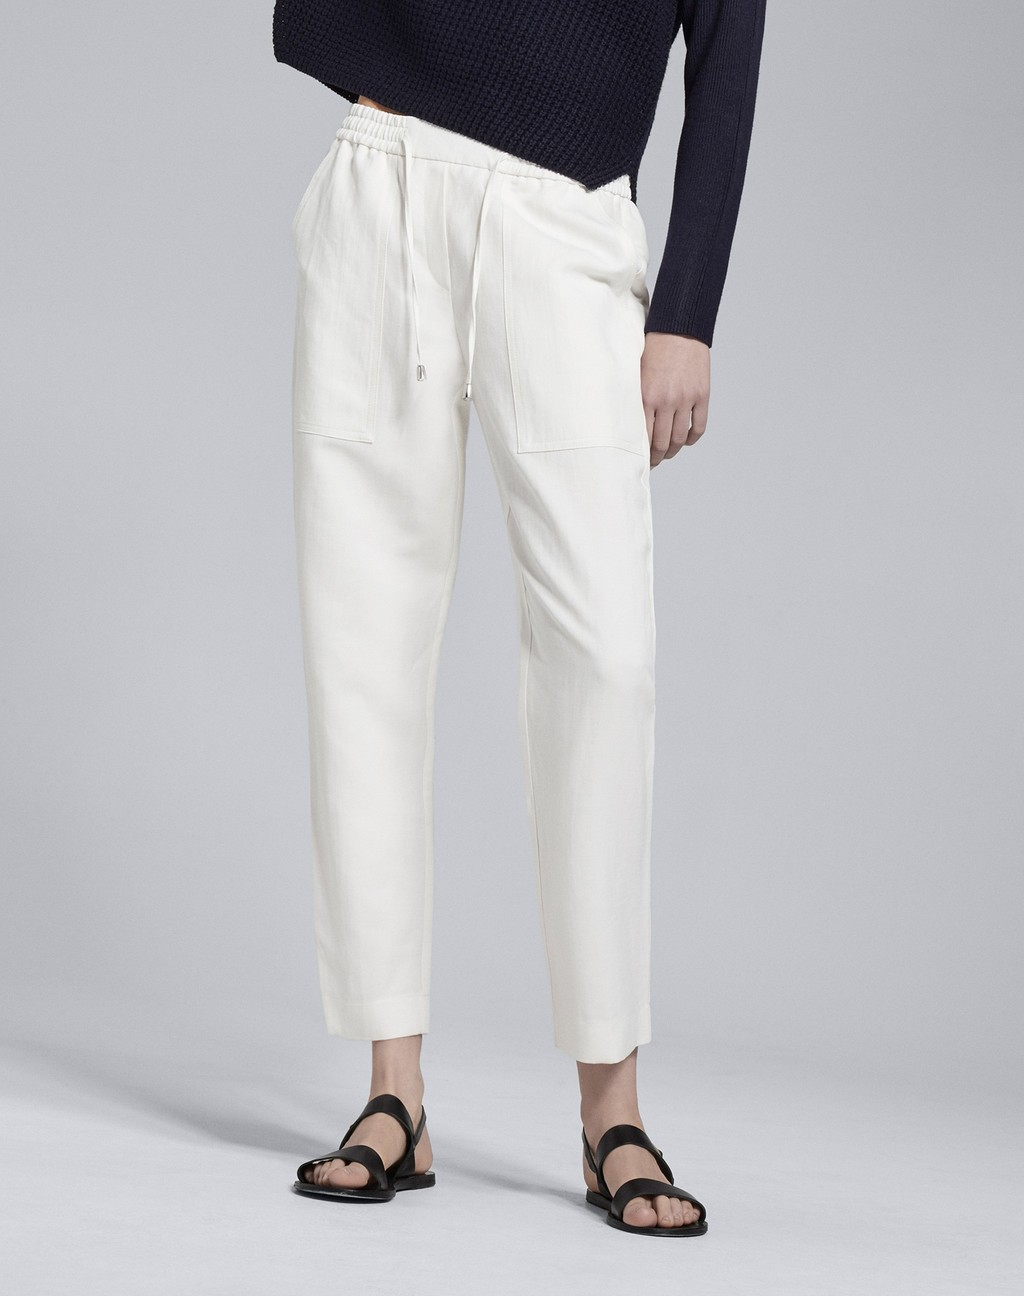 Summer Cargo Pant Soft White - length: standard; pattern: plain; style: peg leg; waist: mid/regular rise; predominant colour: white; occasions: casual, creative work; fibres: linen - mix; fit: tapered; pattern type: fabric; texture group: other - light to midweight; season: s/s 2016